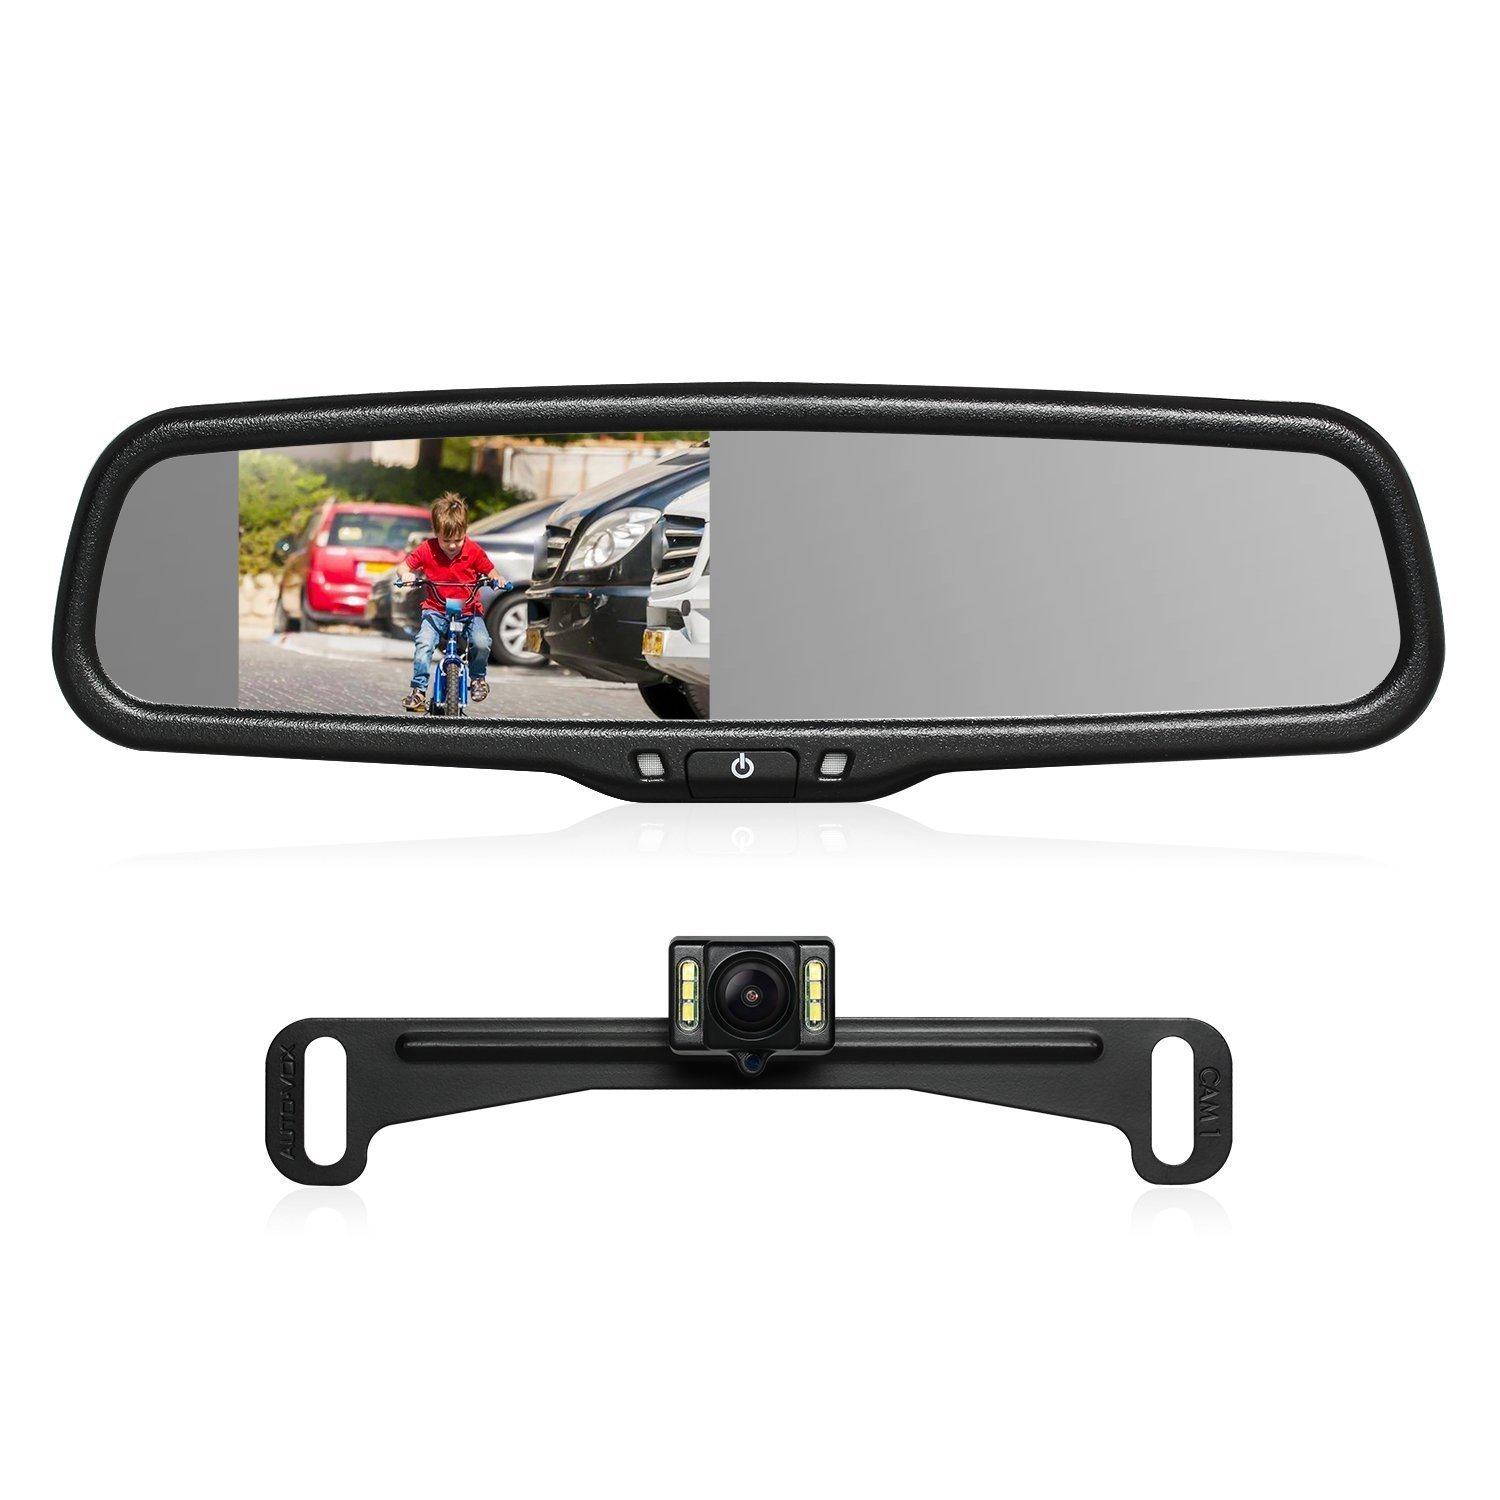 Auto Vox T2 Backup Camera Kit 43lcd Oem Rear View The 2013 Hyundai Wiring Diagram Mirror Monitor With Ip 68 Waterproof Back Up Car Camerasuper Night Vision License Plate